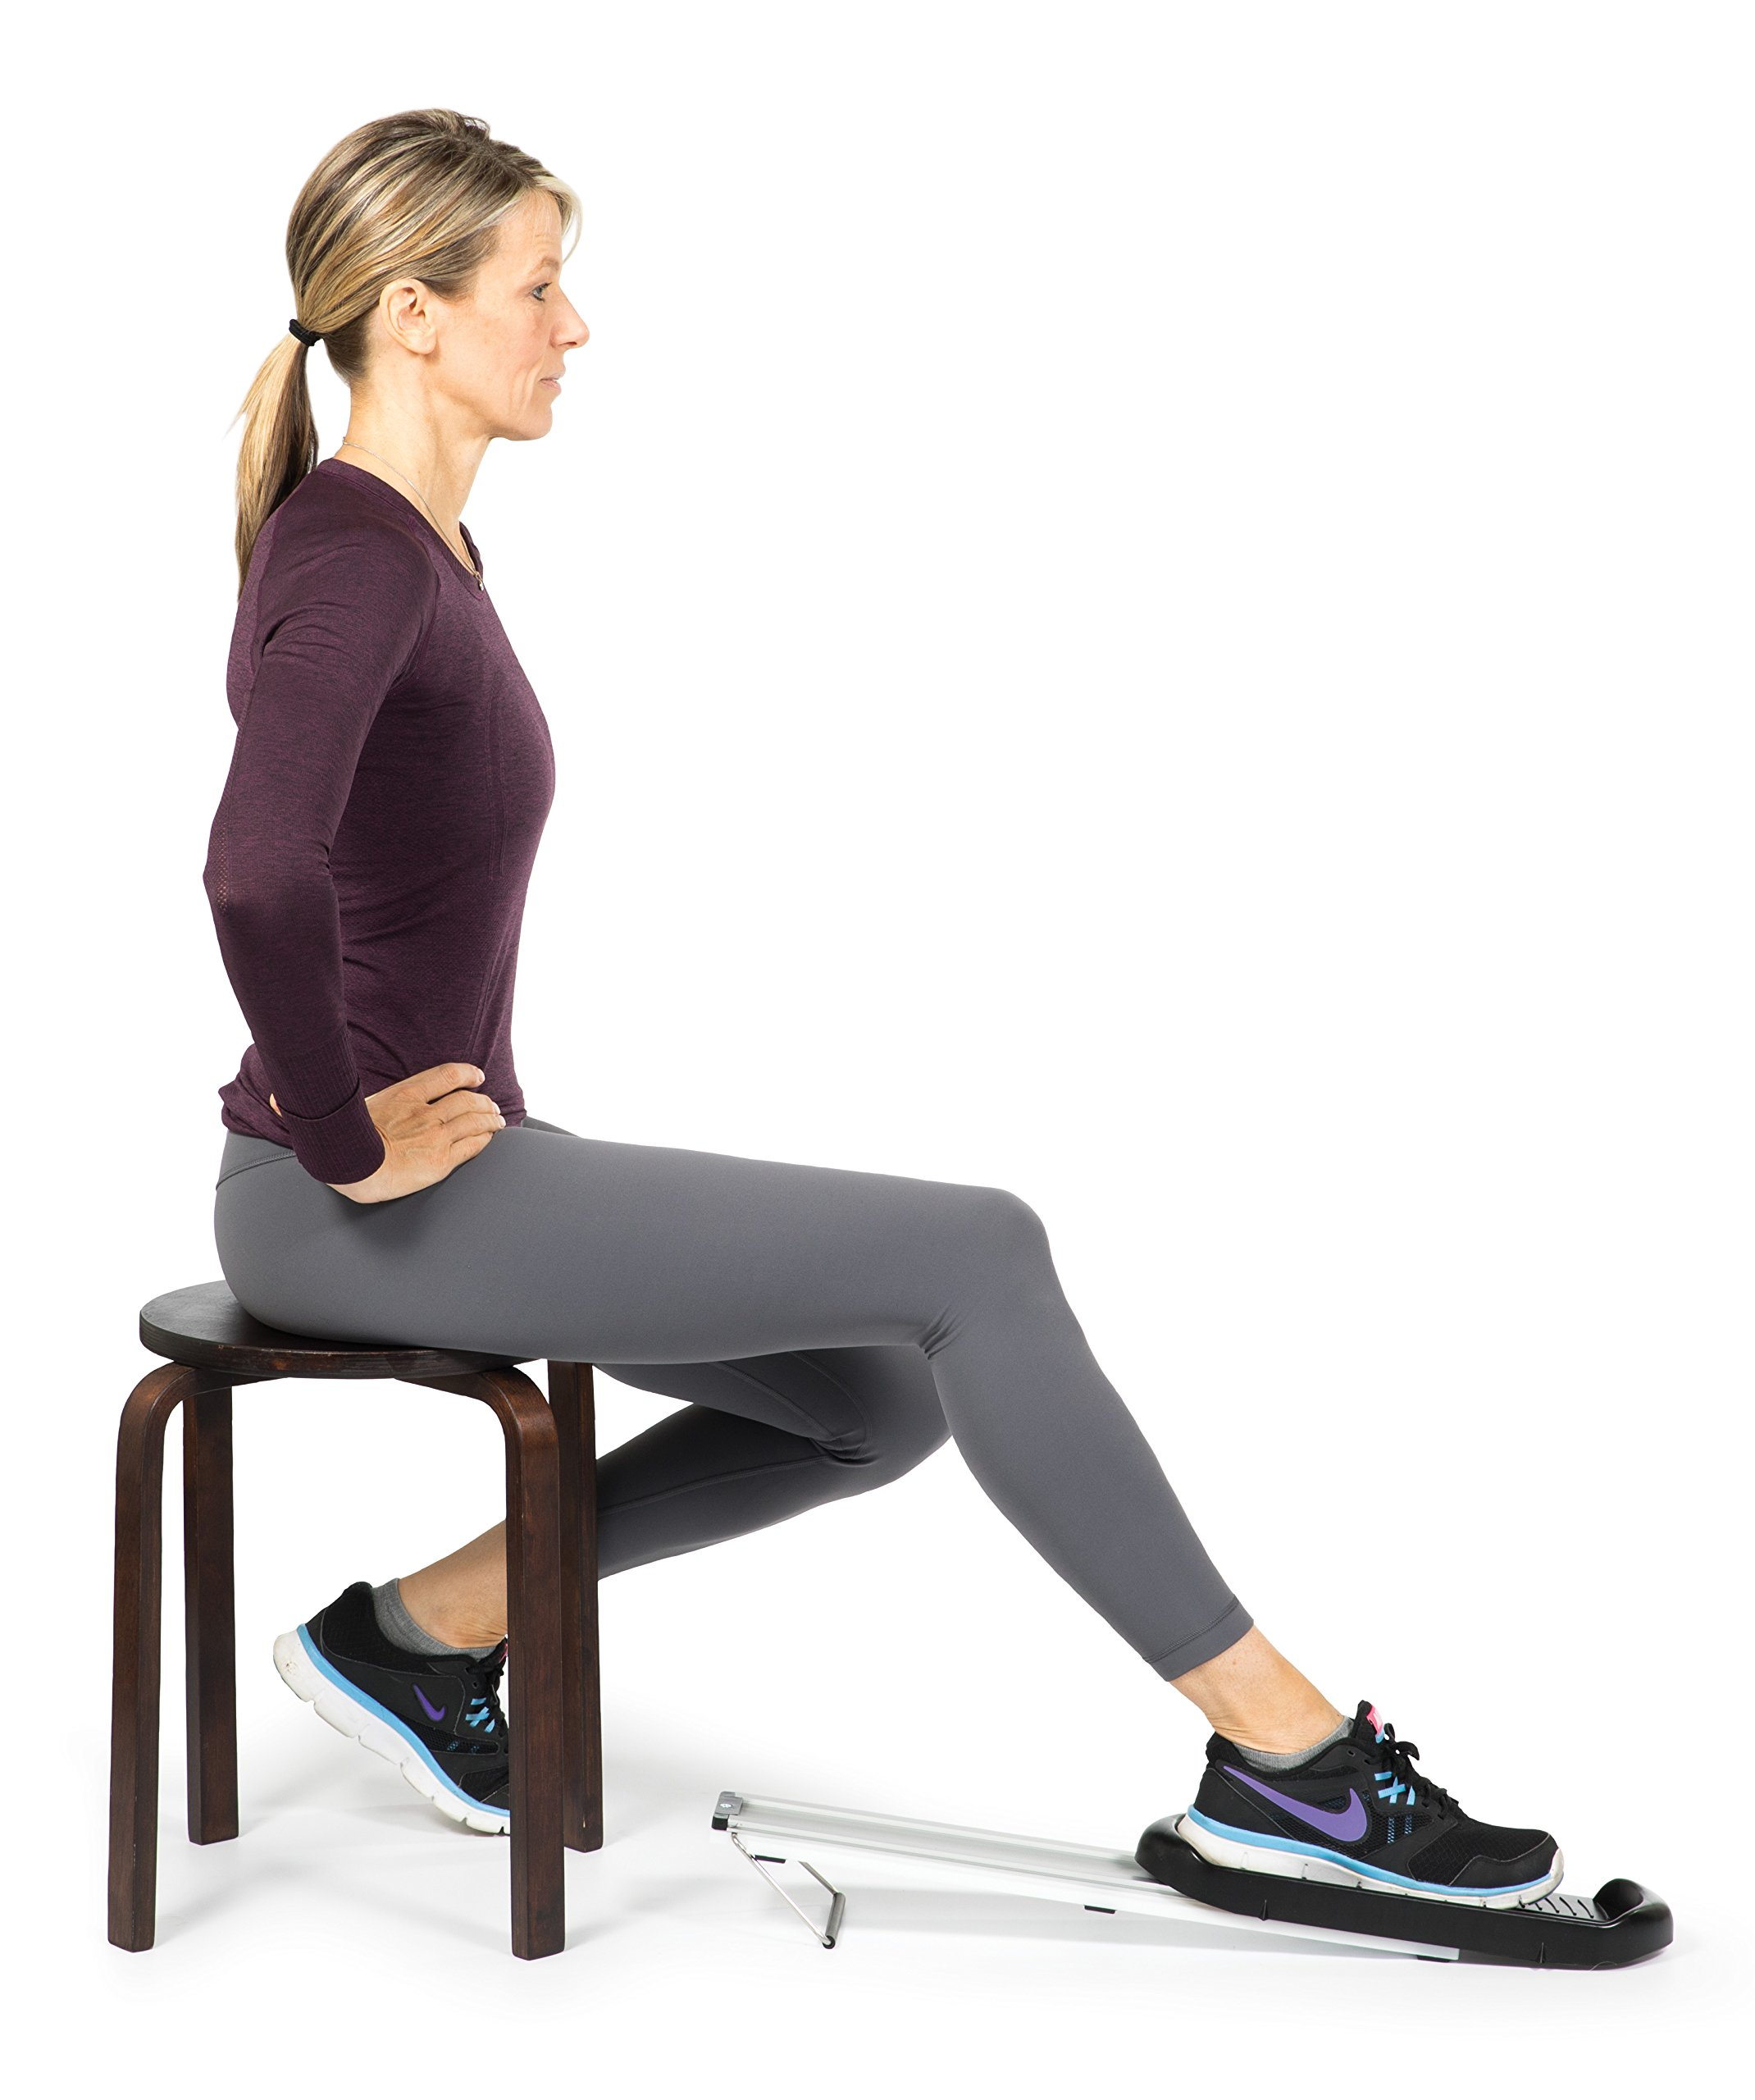 Knee Glide - An Exercise Tool for Therapy After Knee Replacement | Rehabilitation for ACL, PCL, Shoulder, Rotator Cuff Surgery, or Hip Replacement by OPTP (Image #4)